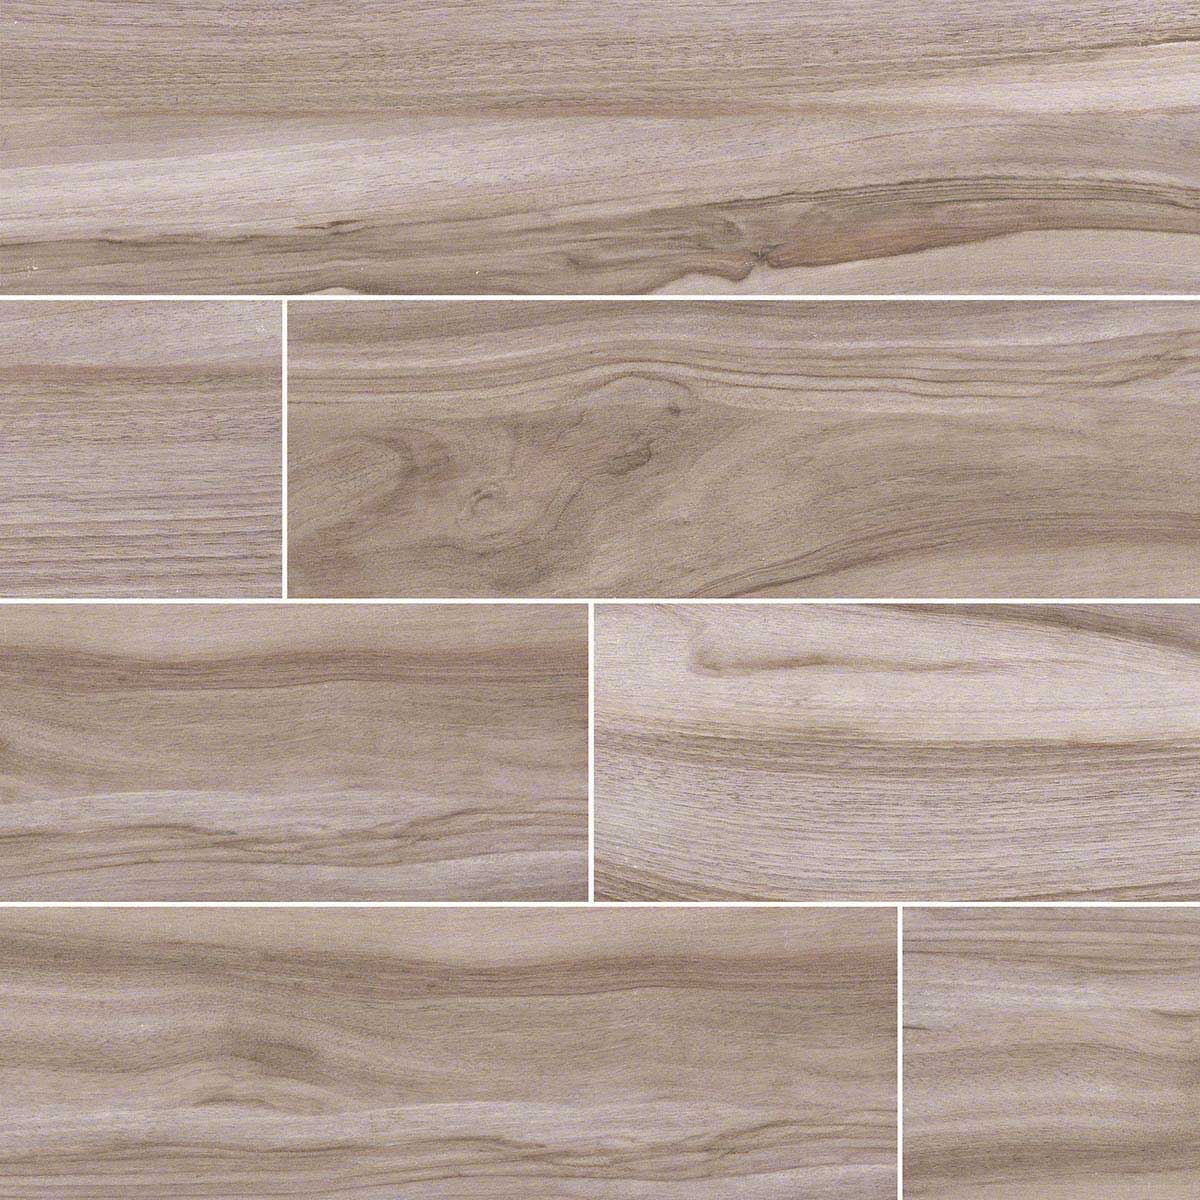 floor is look or flaviker that flavikeris tiles tile floors like dakota replicates ceramic it wood by